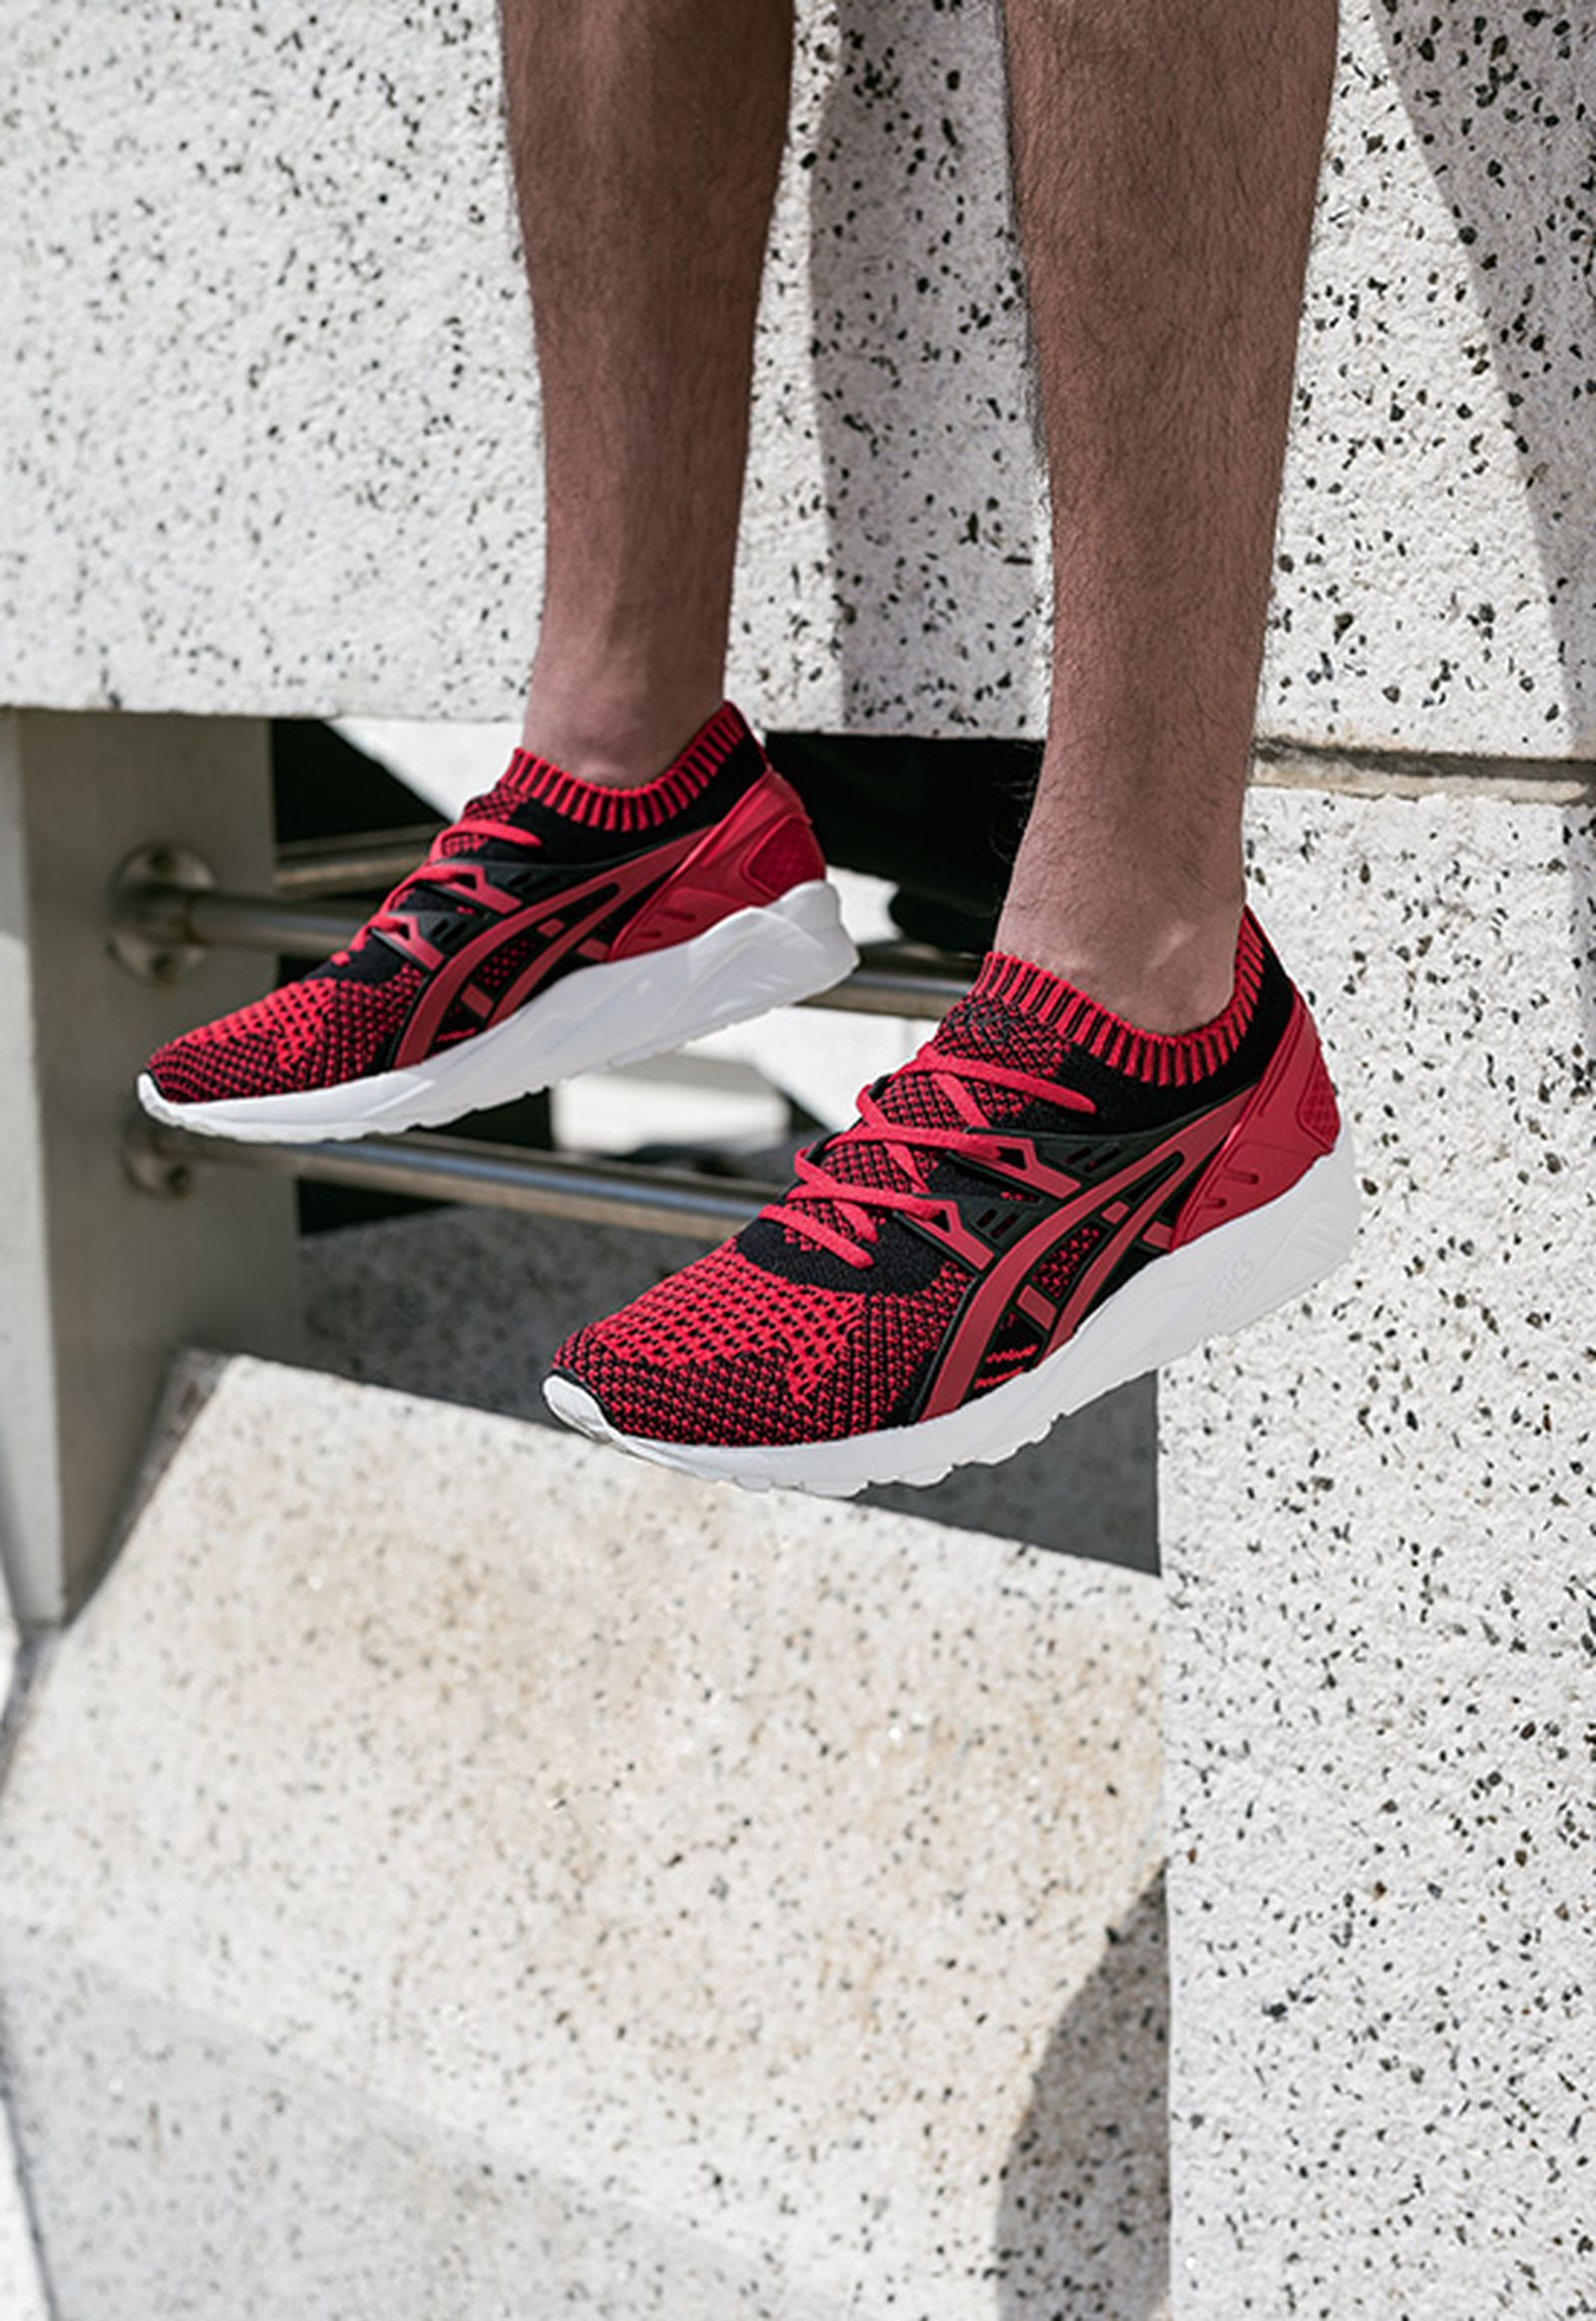 asics-tiger-gel-kayano-trainer-knit-colors-06